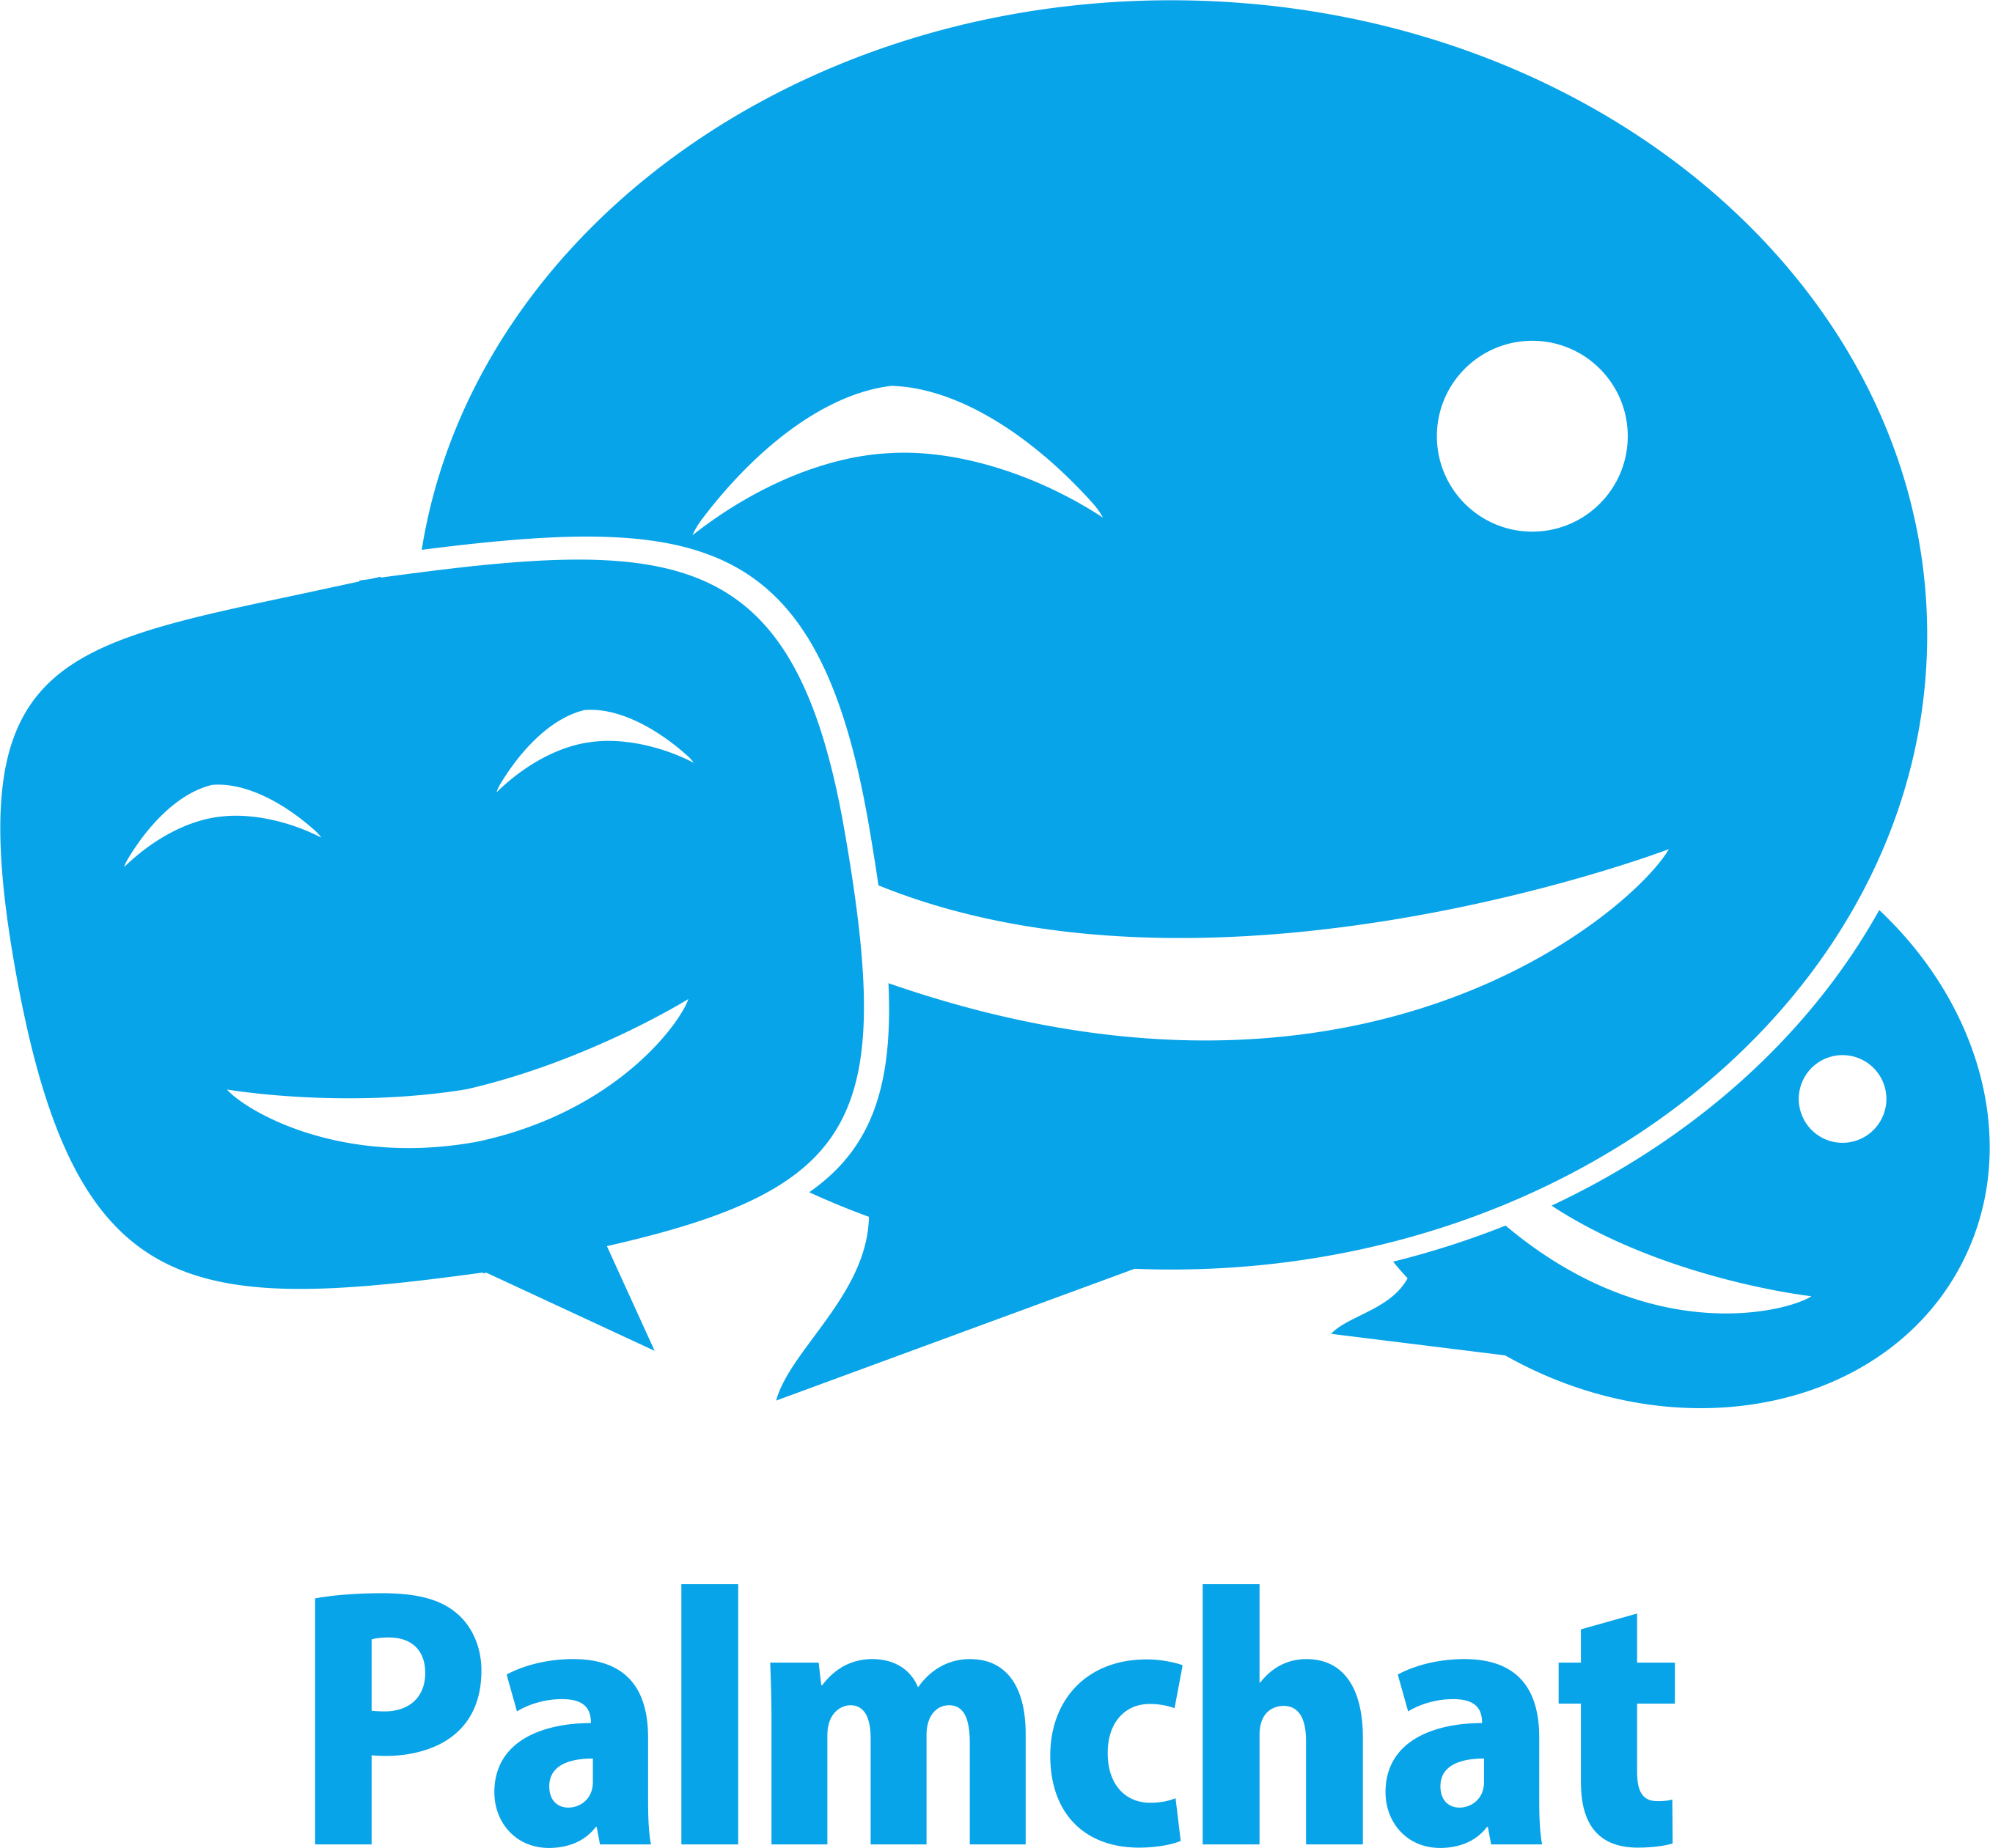 Palmchat download for samsung  Effecttrains ga